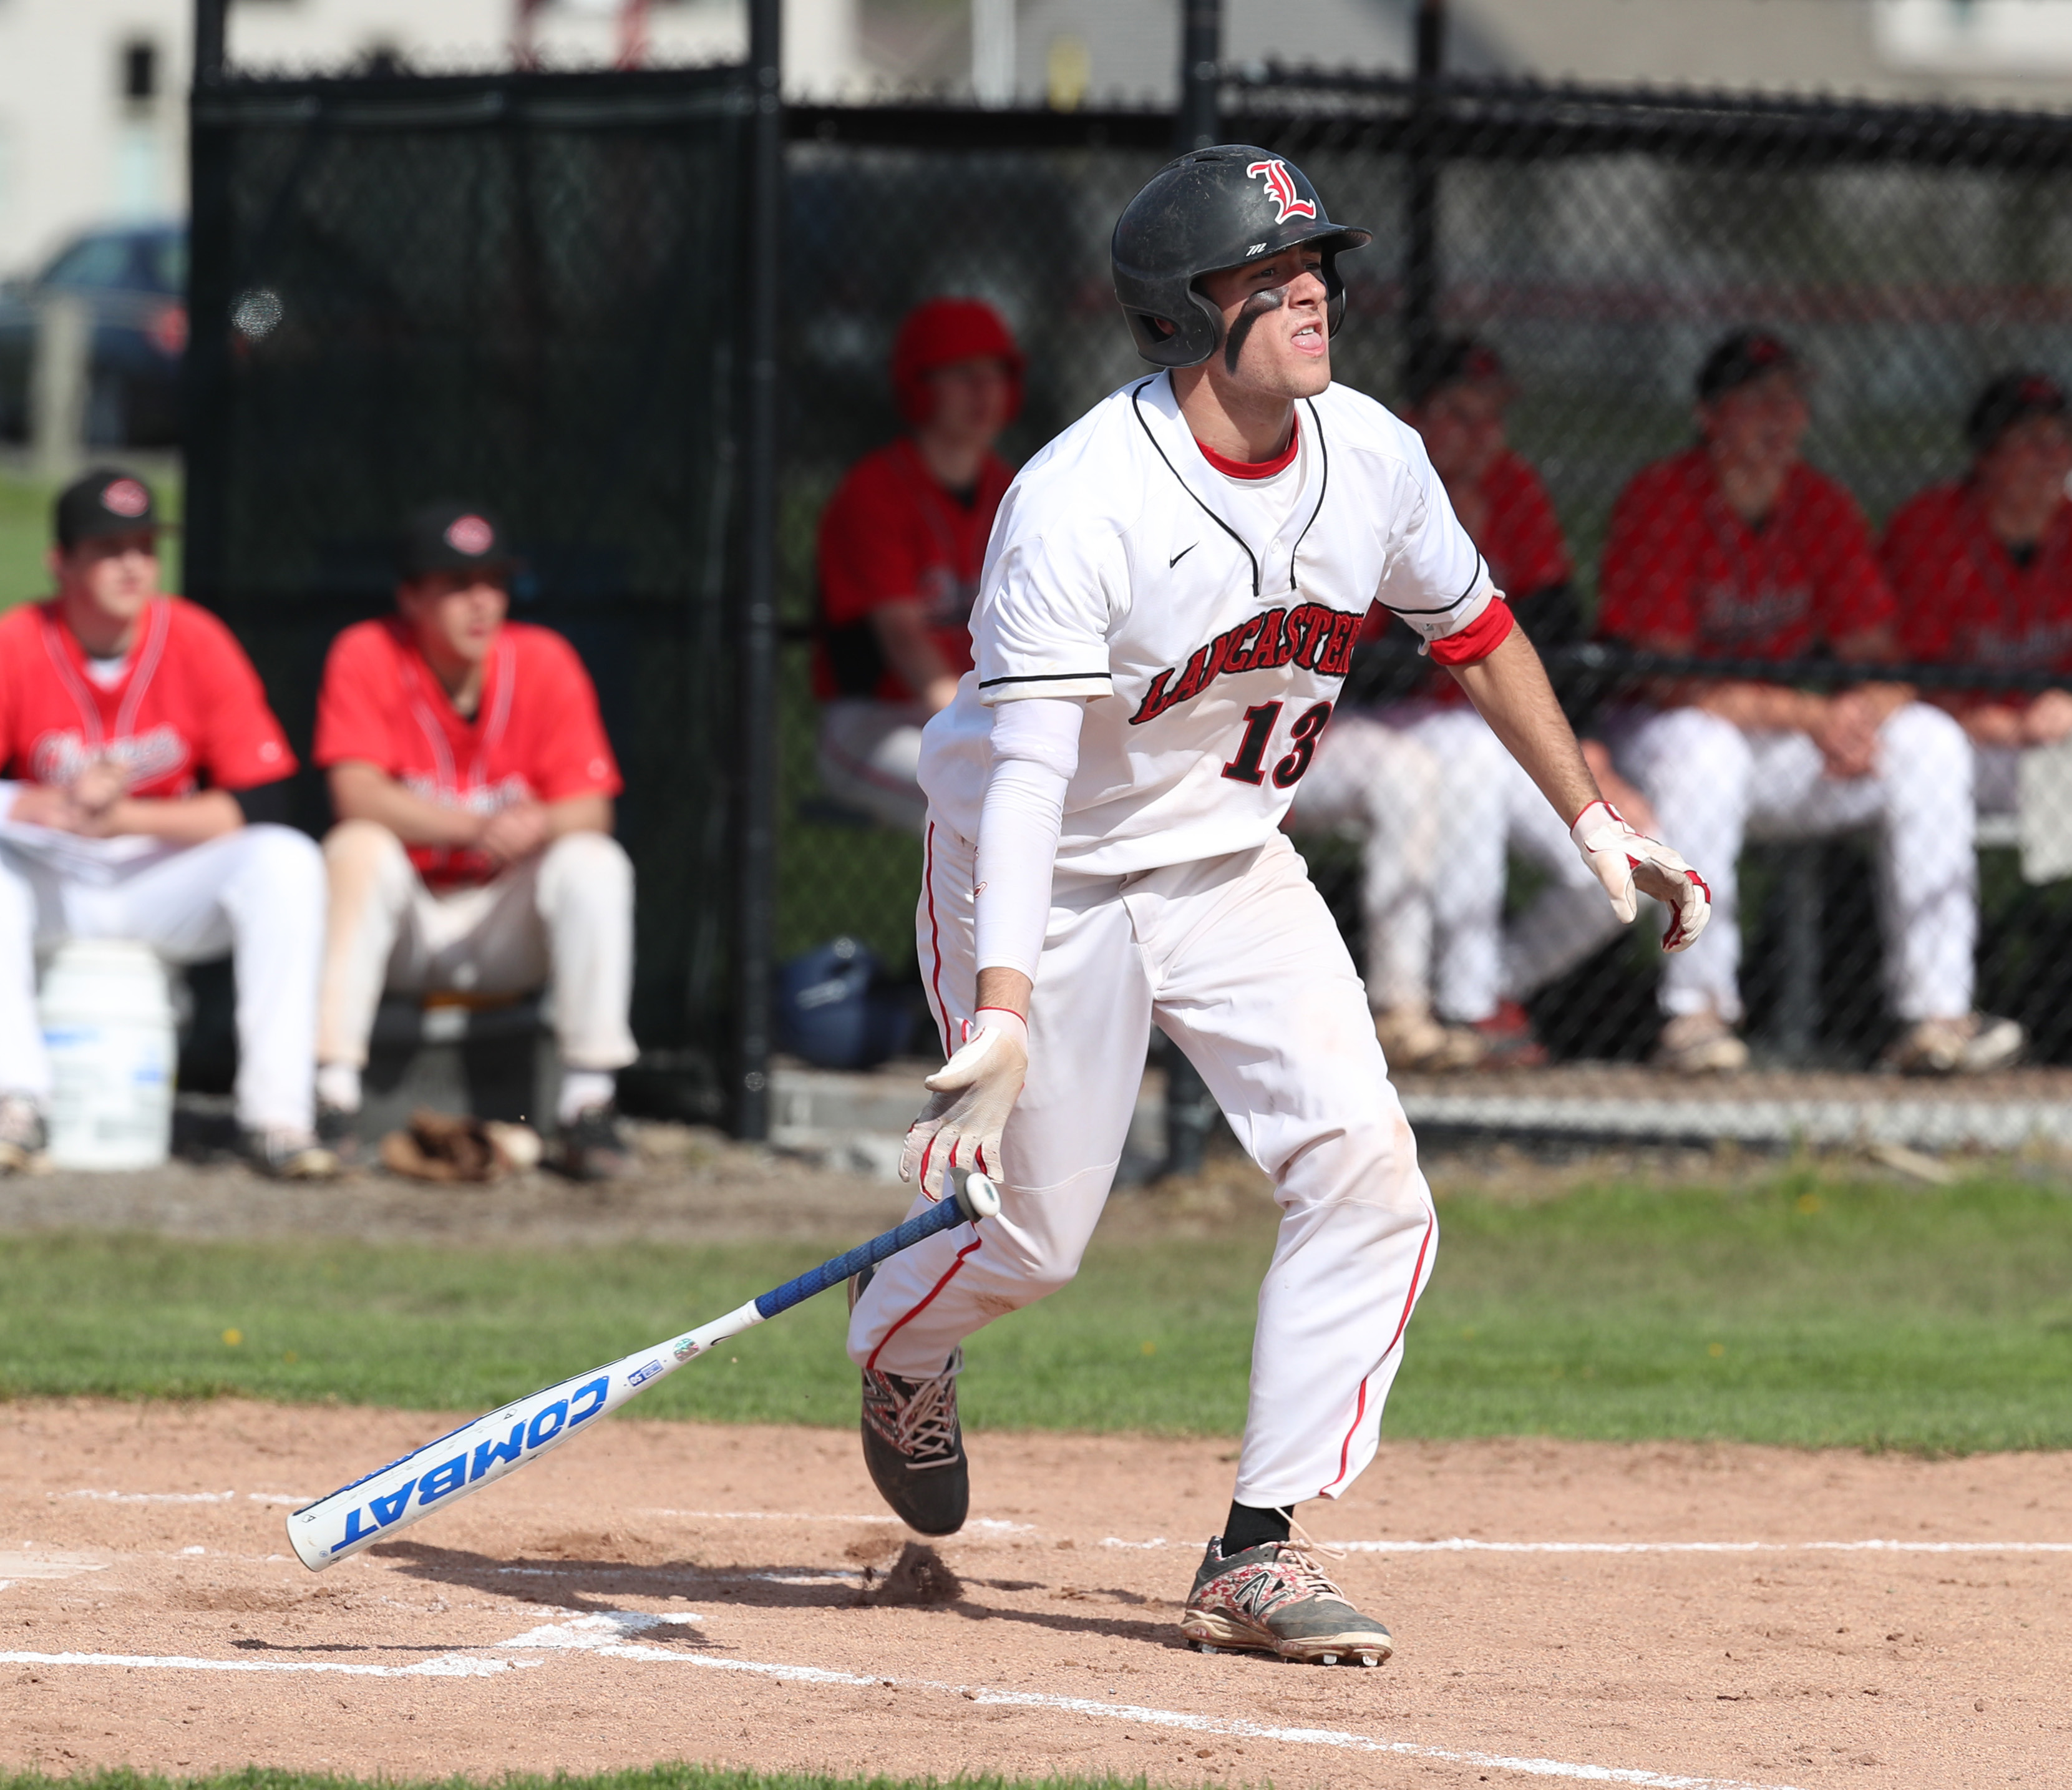 Lancaster's Max Giordano hits a home run in the first inning. (James P. McCoy/Buffalo News)